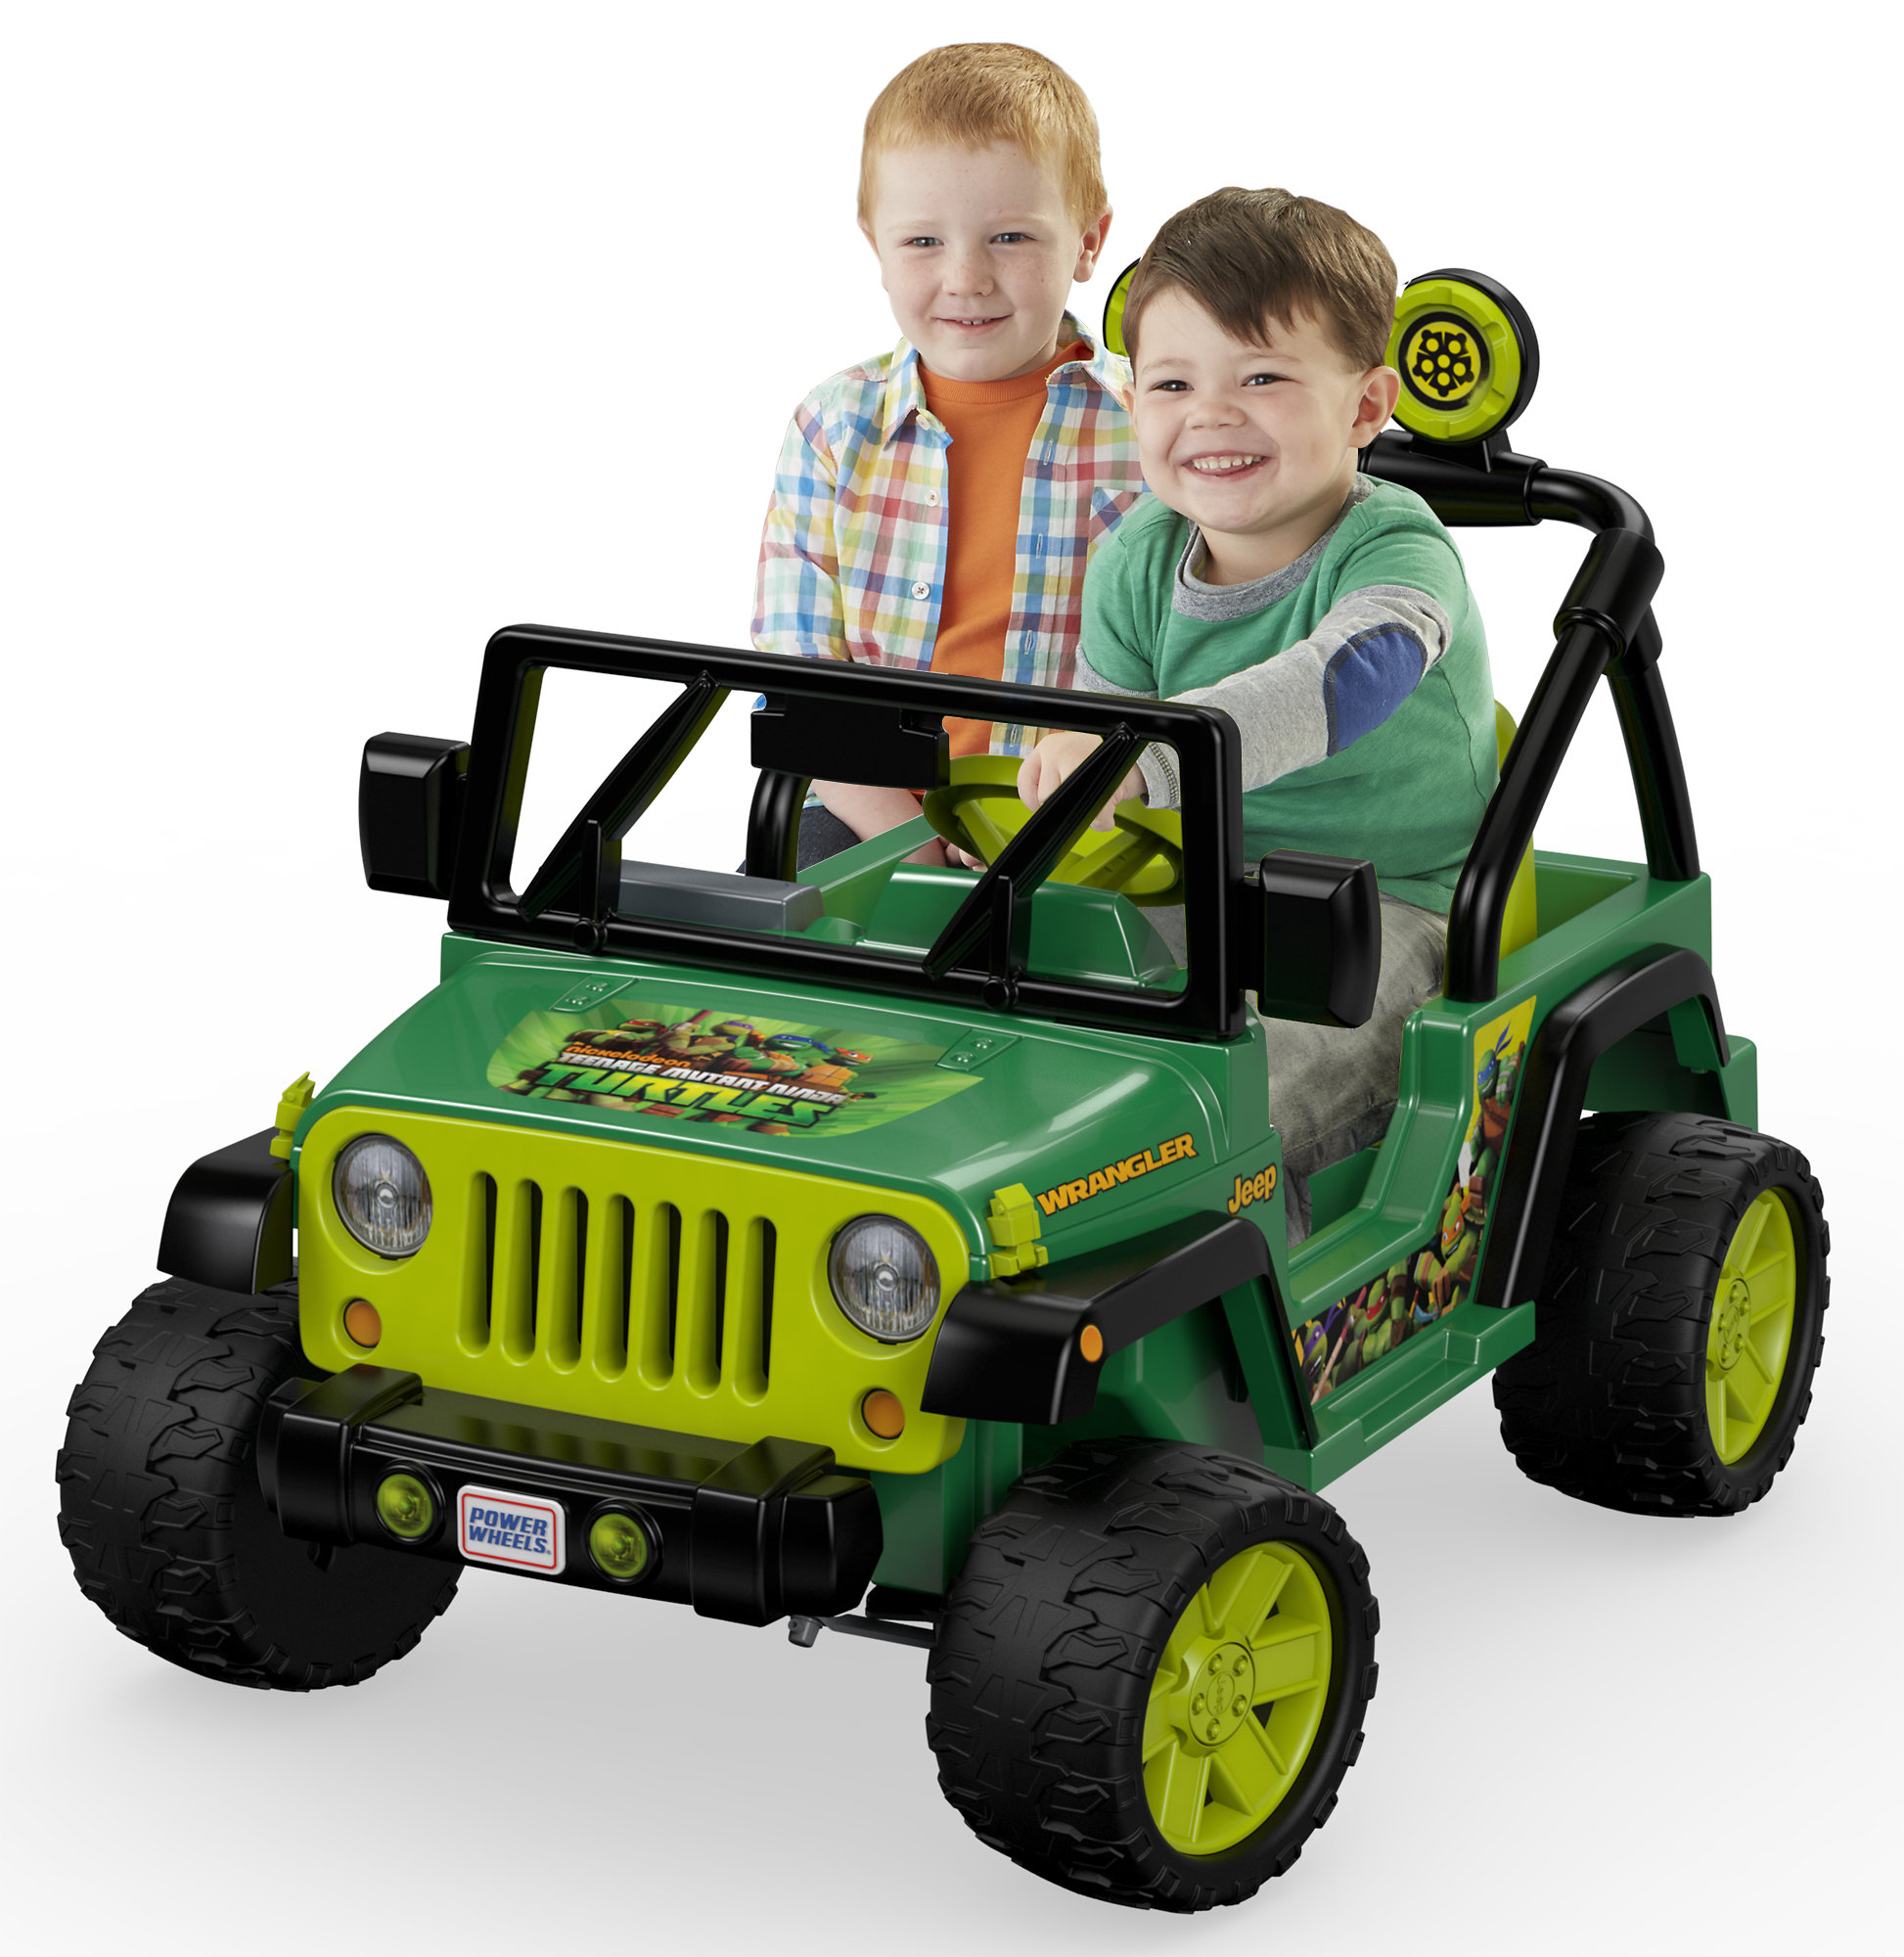 Power Wheels Nickelodeon Teenage Mutant Ninja Turtles Jeep Wrangler 12V Battery-Powered... by Mattel